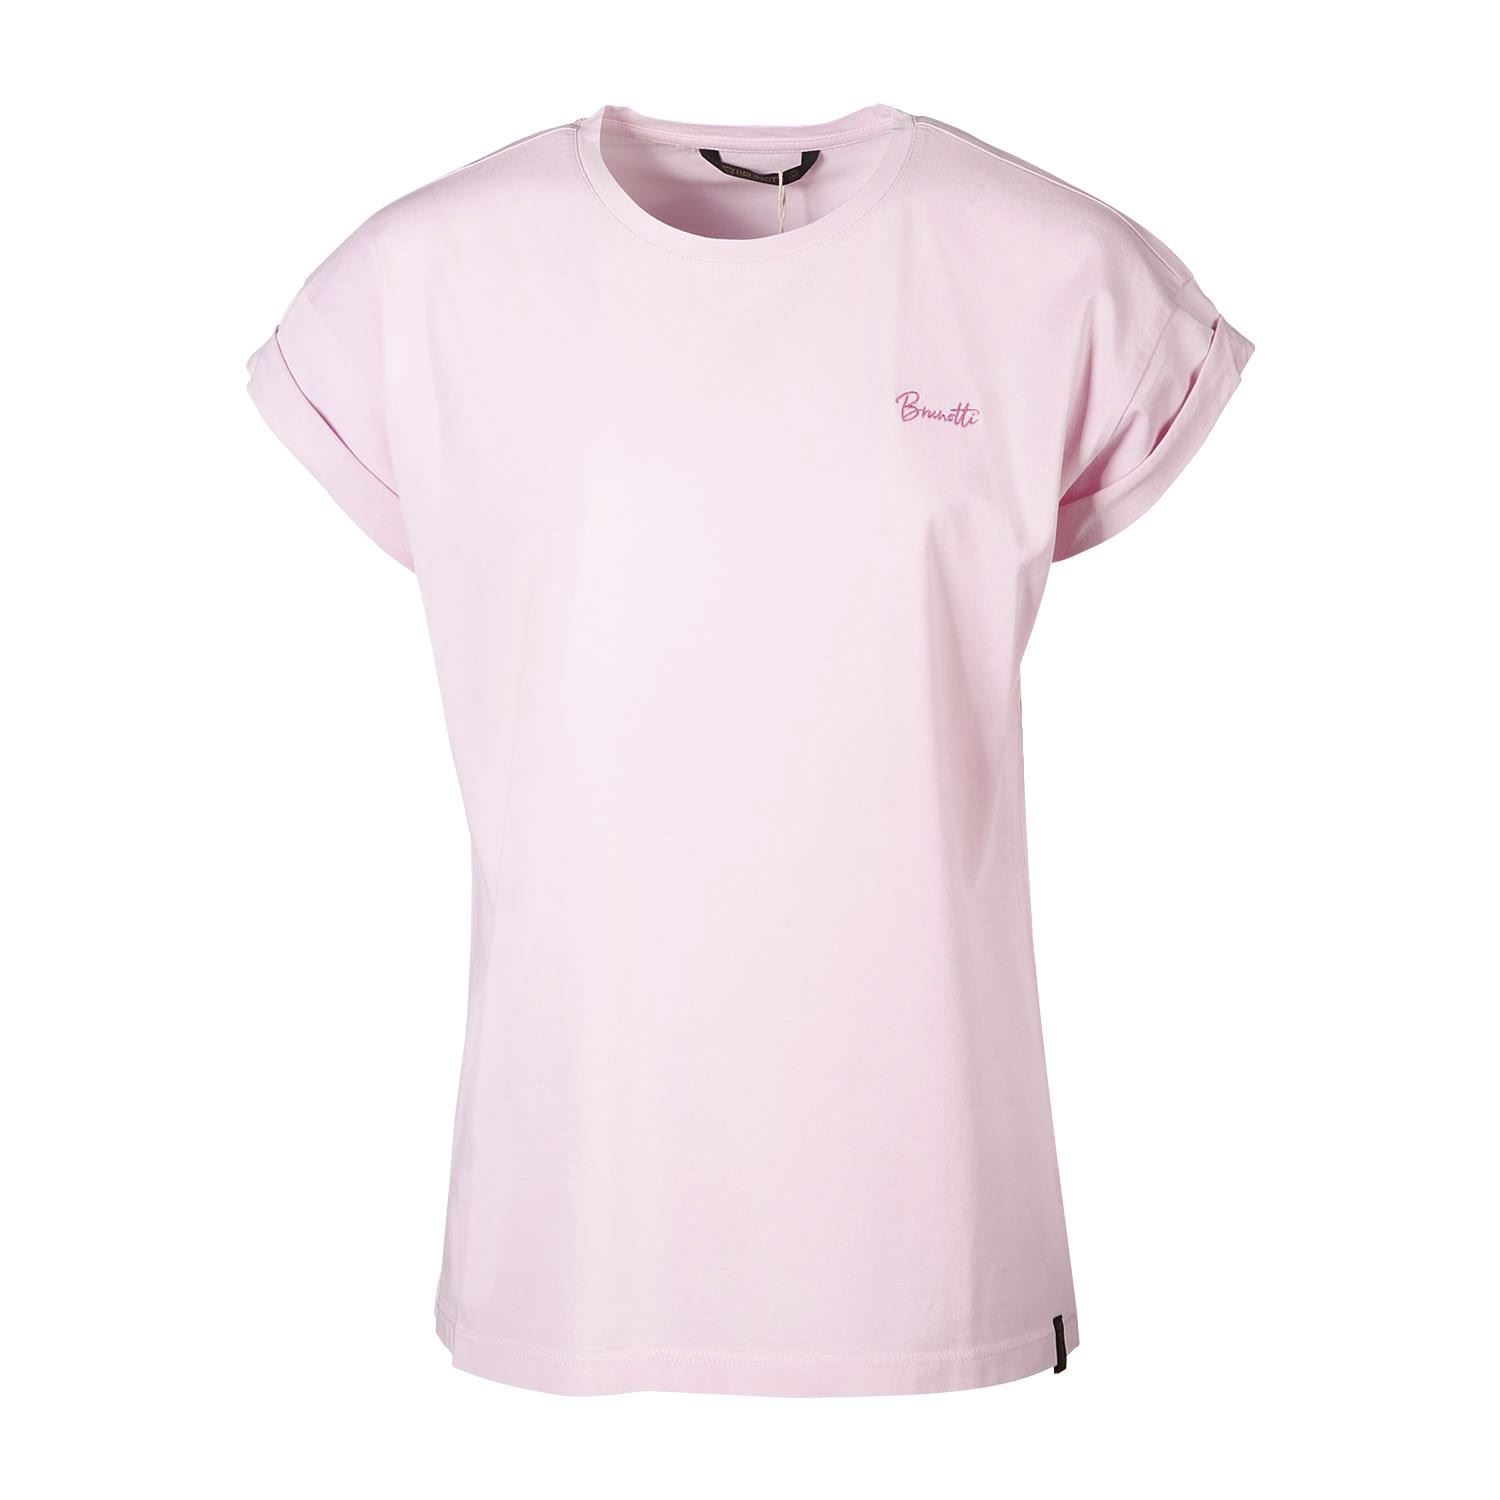 Brunotti Salina  (rosa) - damen t-shirts & tops - Brunotti online shop